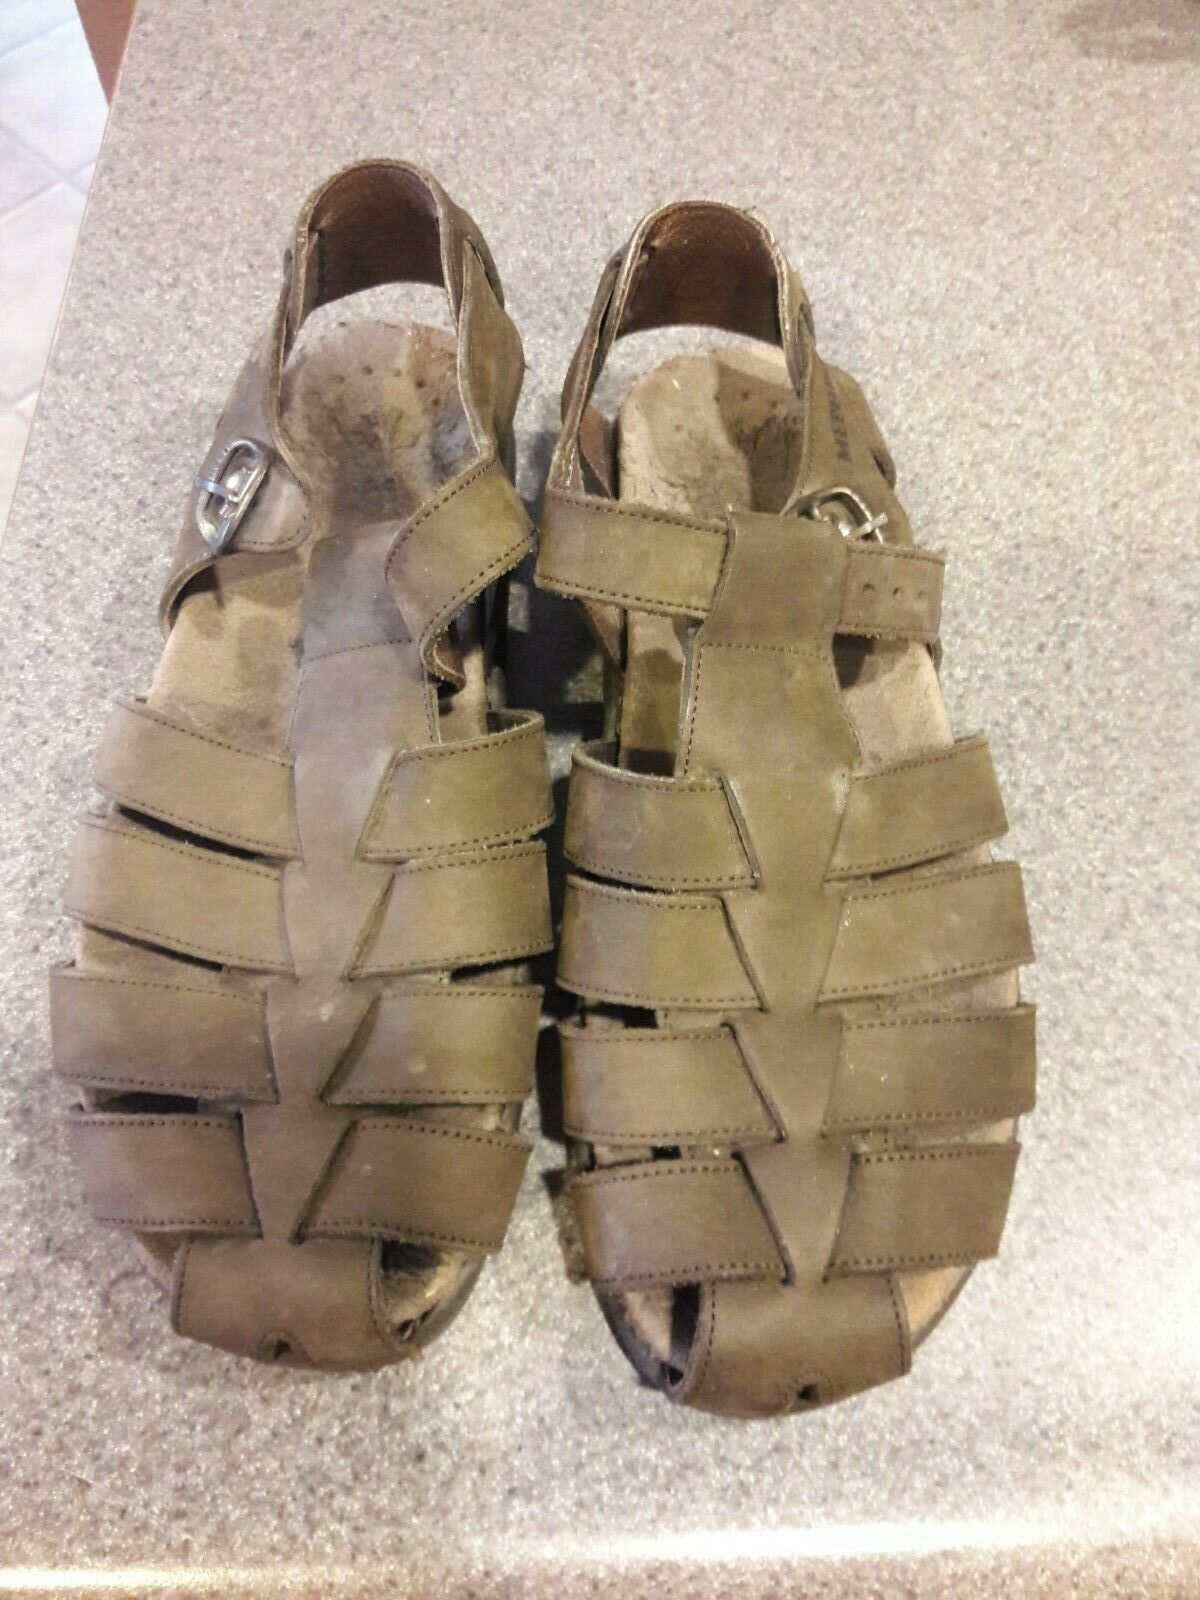 Men's Brown Leather MEPHISTO Fisherman Casual Summer Sandals shoes size 42. 8.5